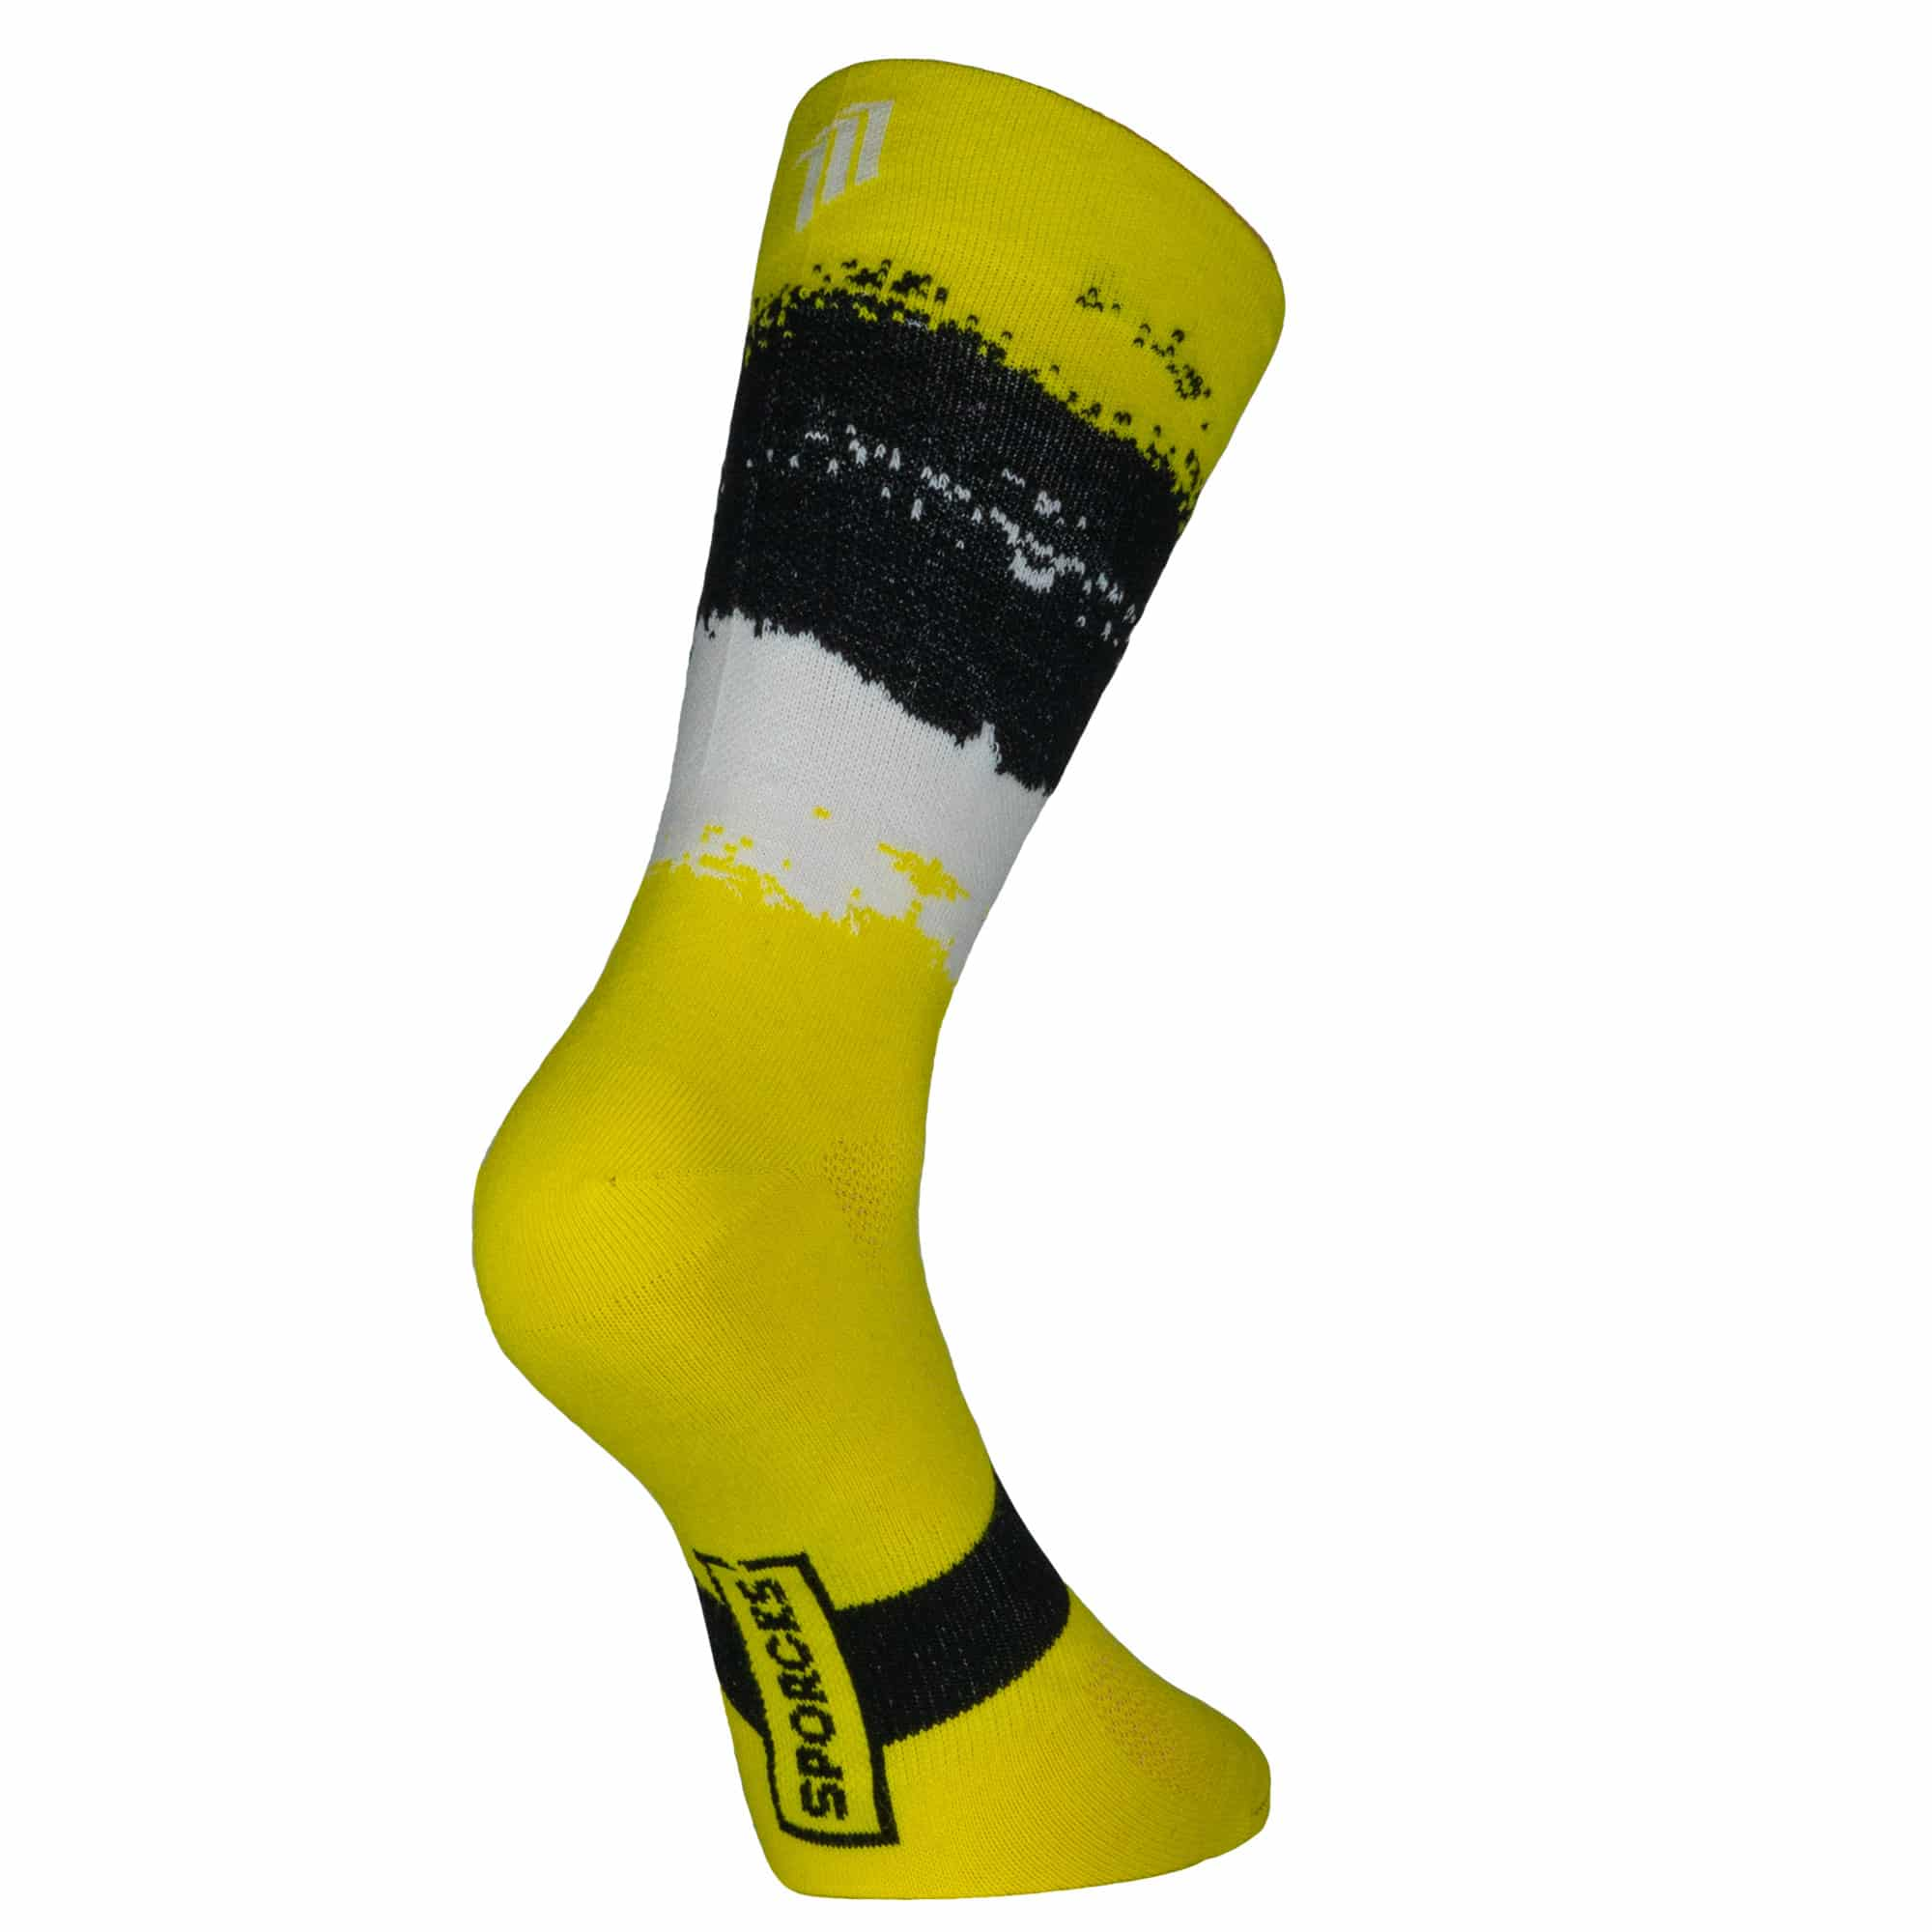 Dolomite Yellow Merino Wool- Calcetín ciclismo